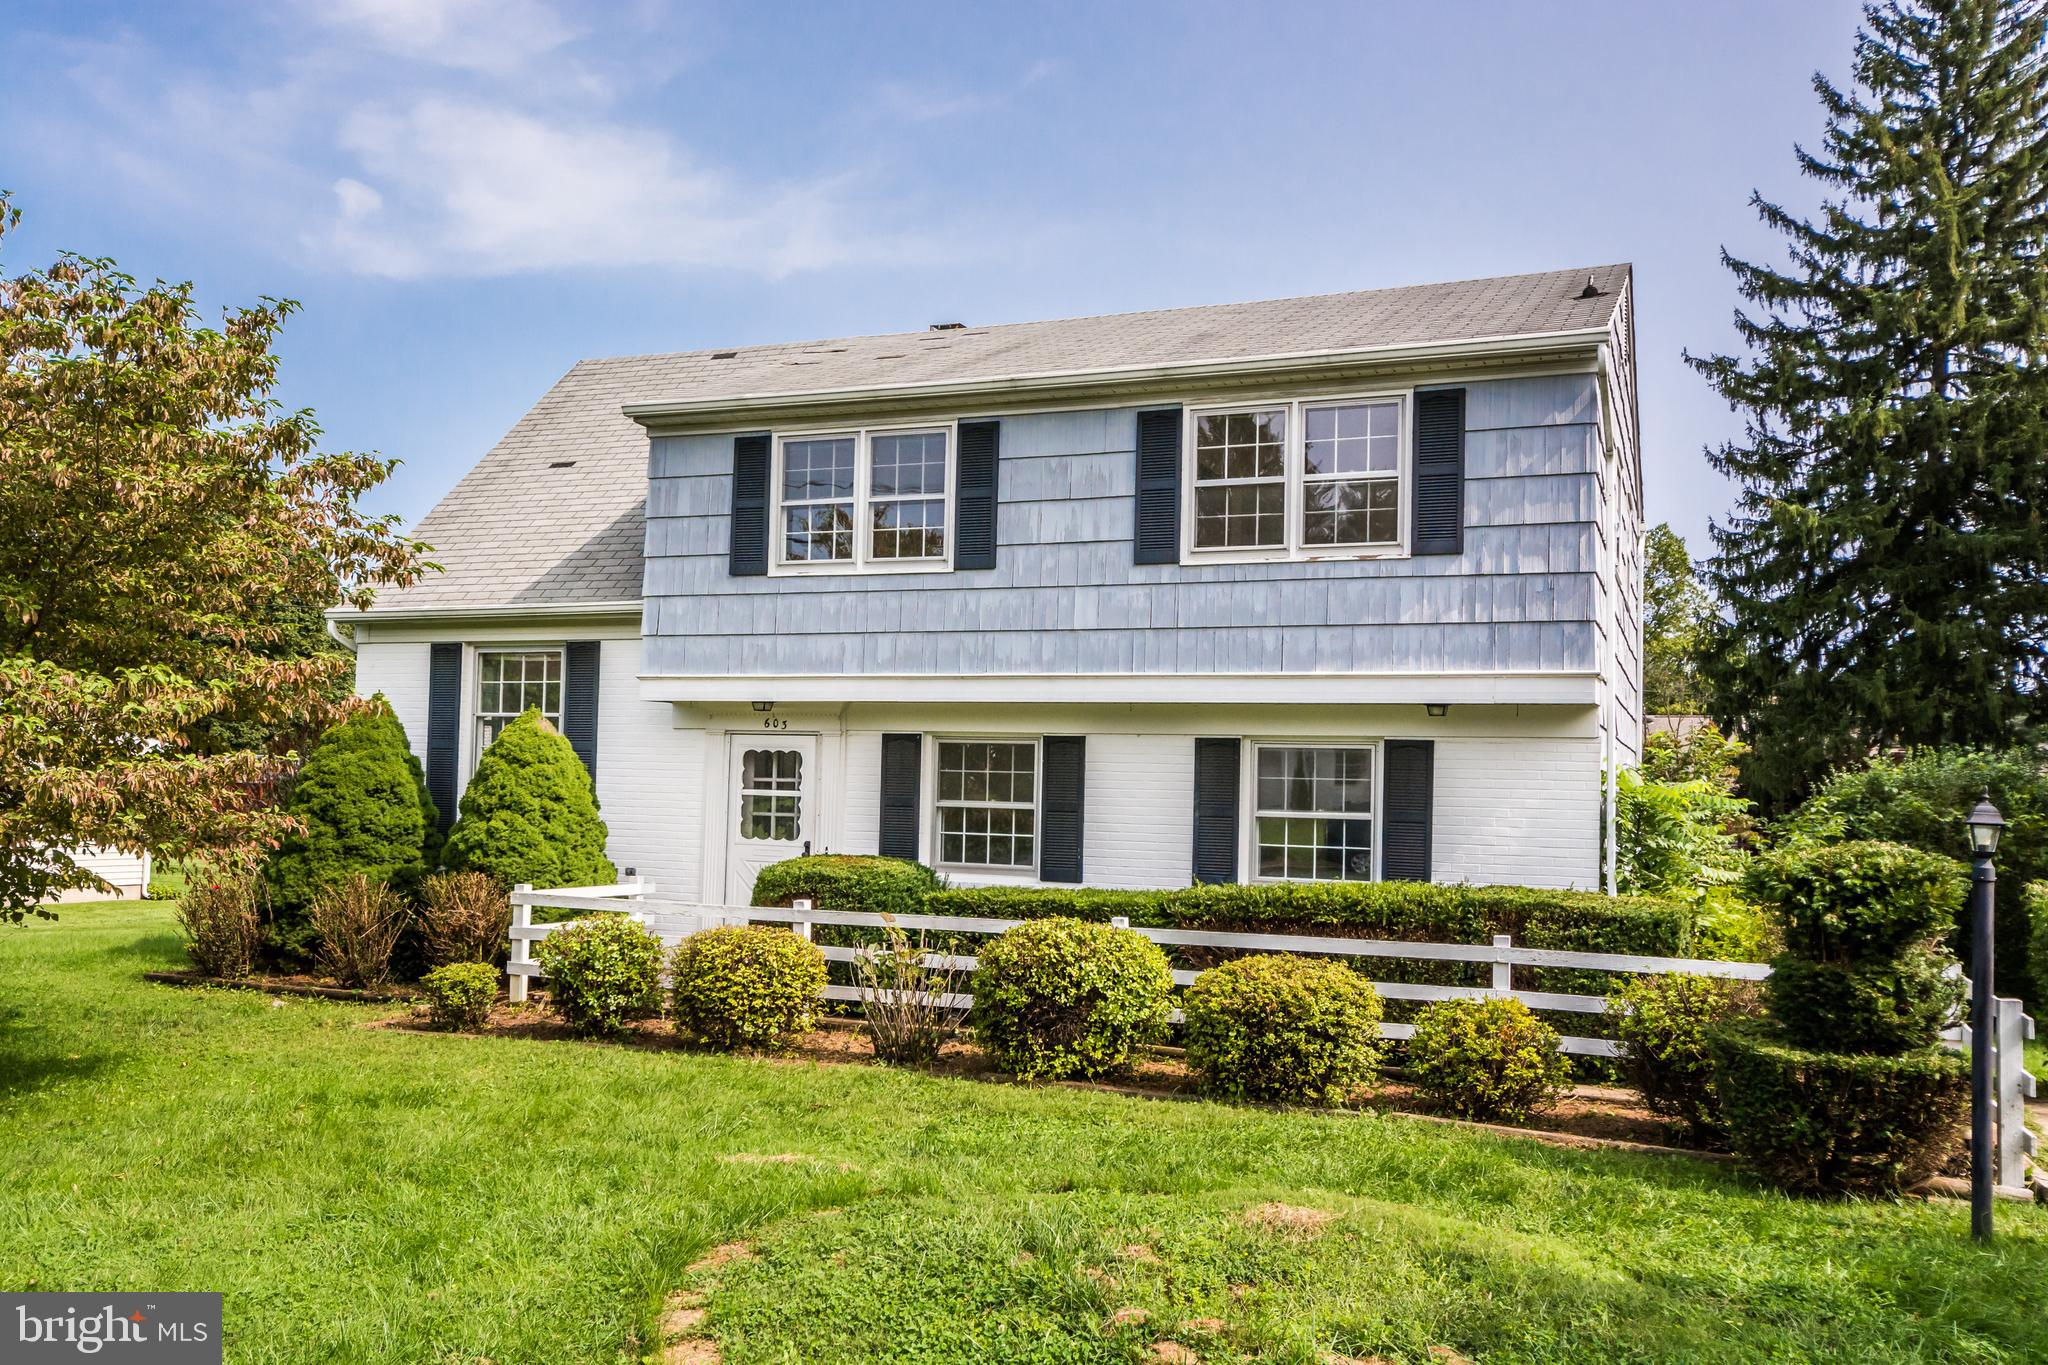 603 Mapleview Dr, Bel Air, MD, 21014